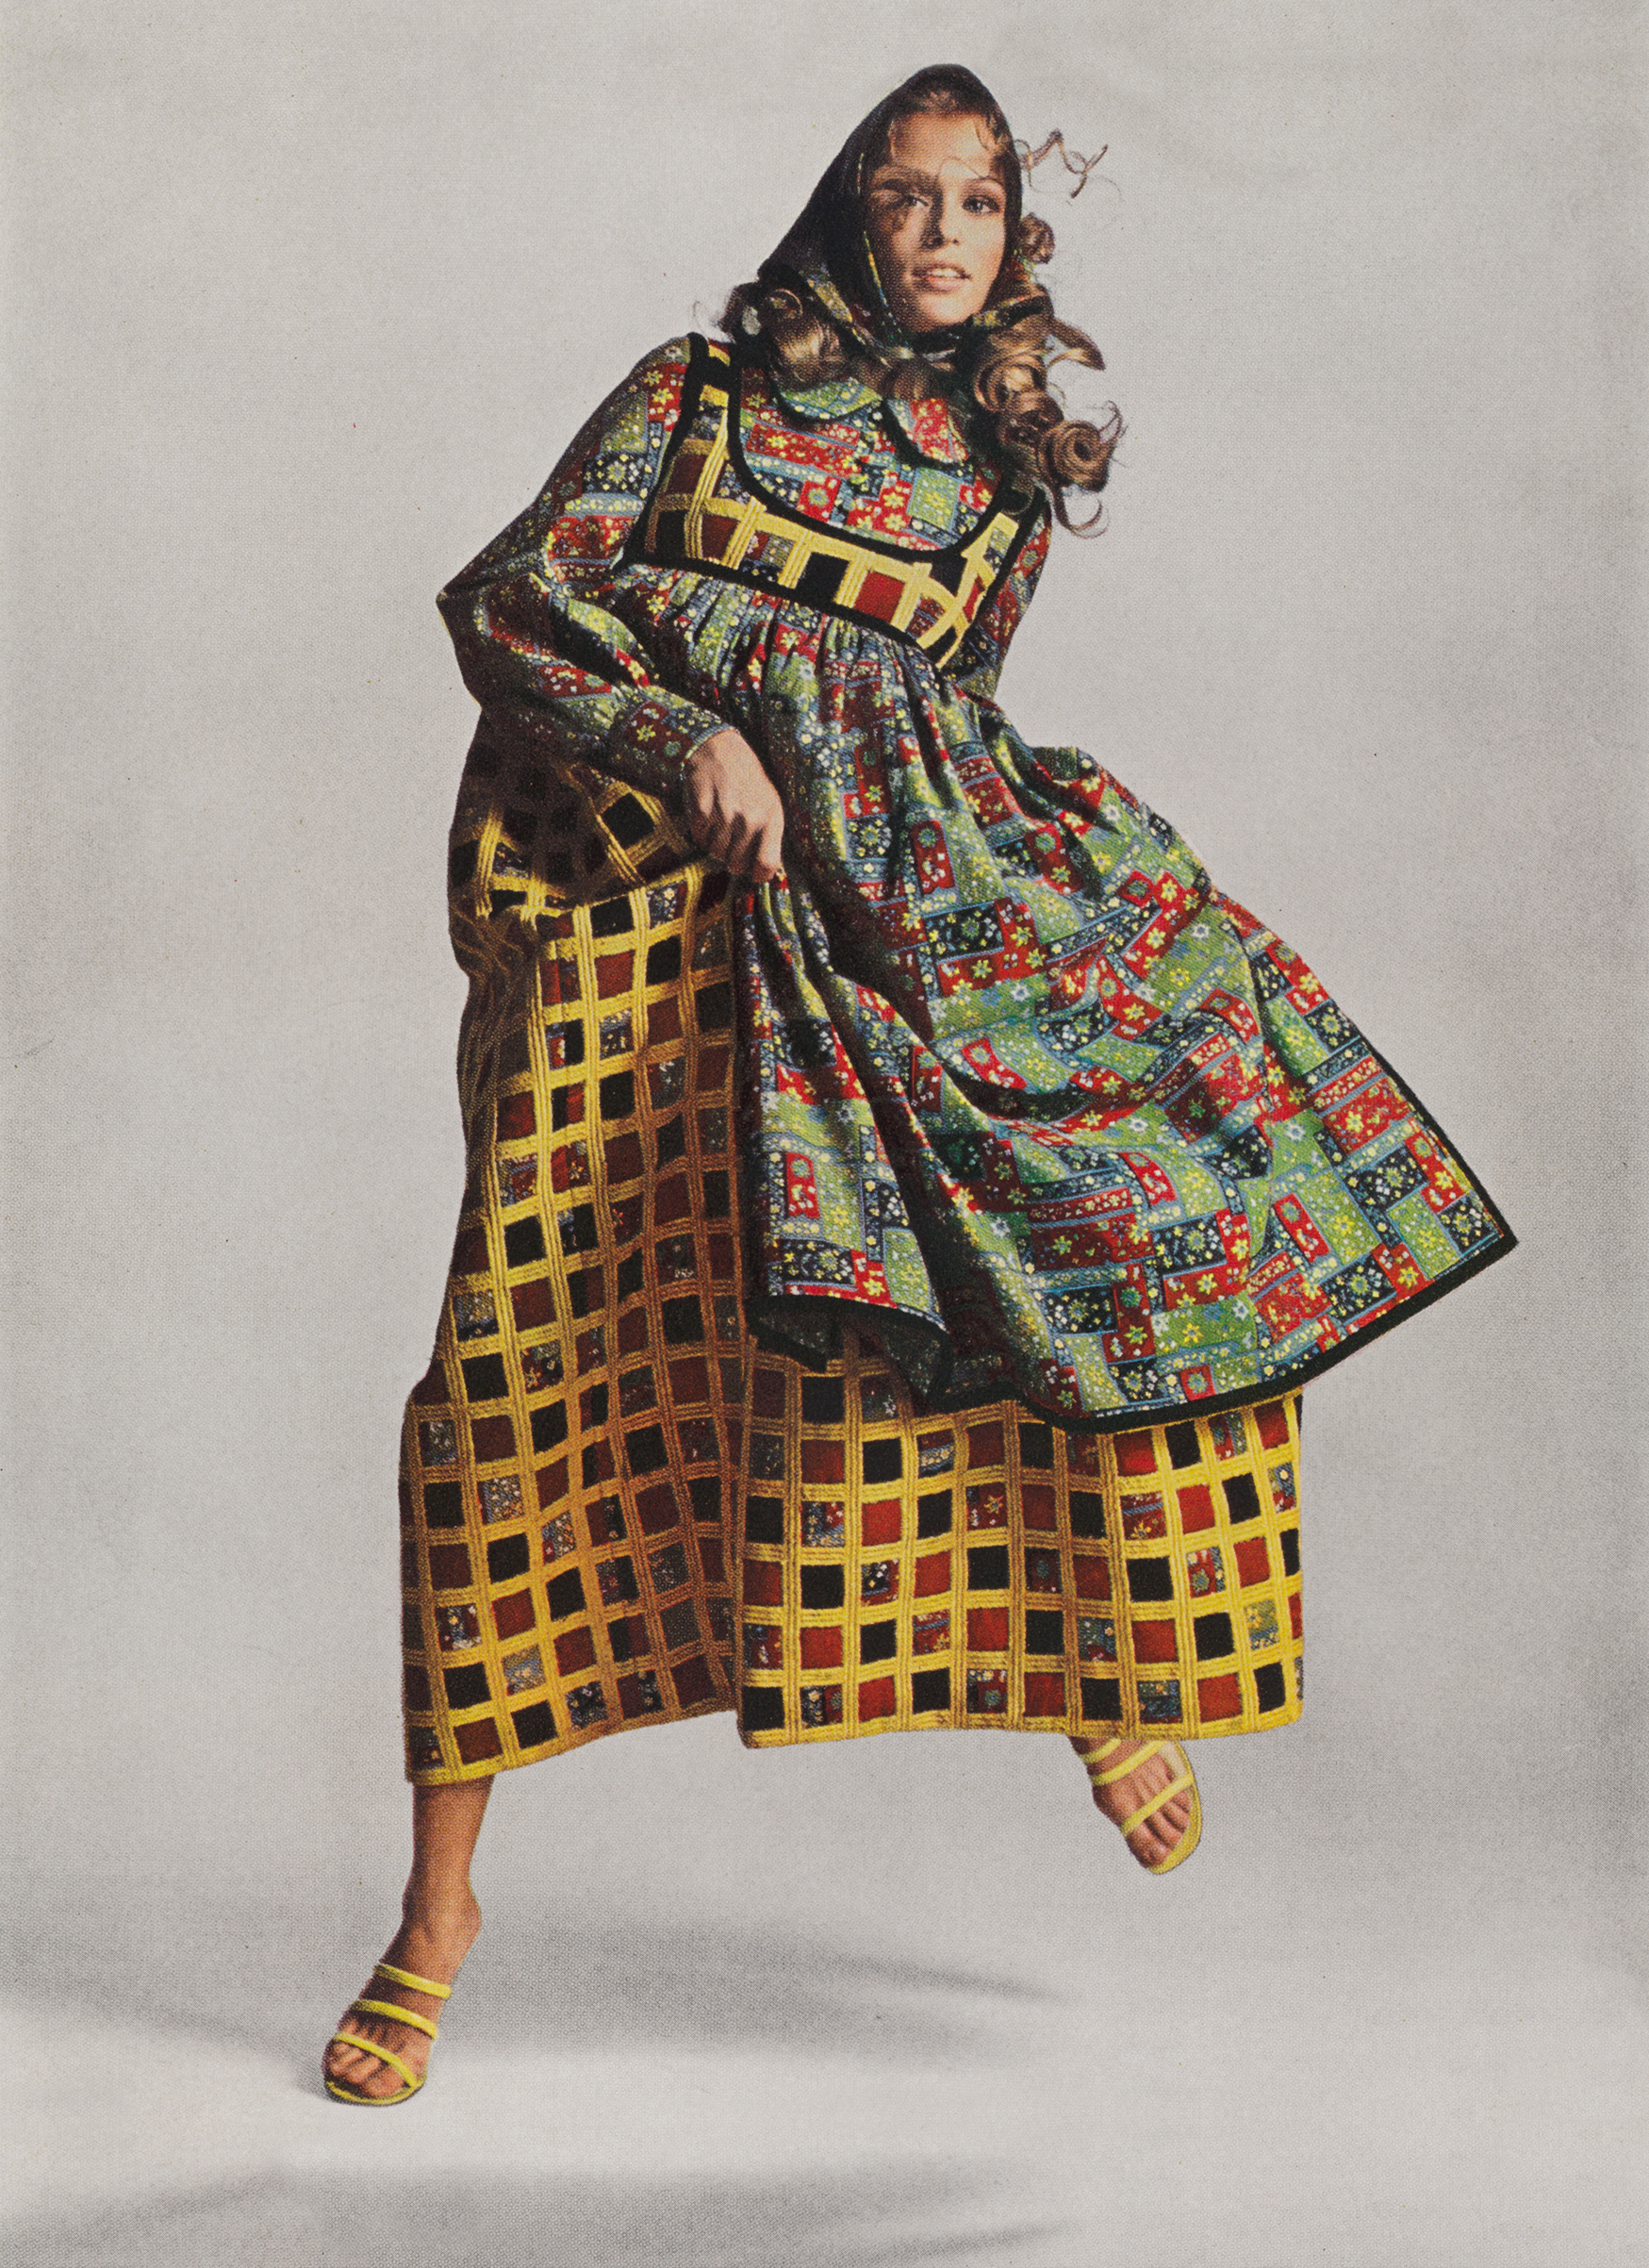 Advertisement for the Cotton Producers Institute featuring a variation on Geoffrey Beene's atypical, Bohemian influenced Fall 1969 Bazaar collection. Published in Harper's Bazaar, September 1969.